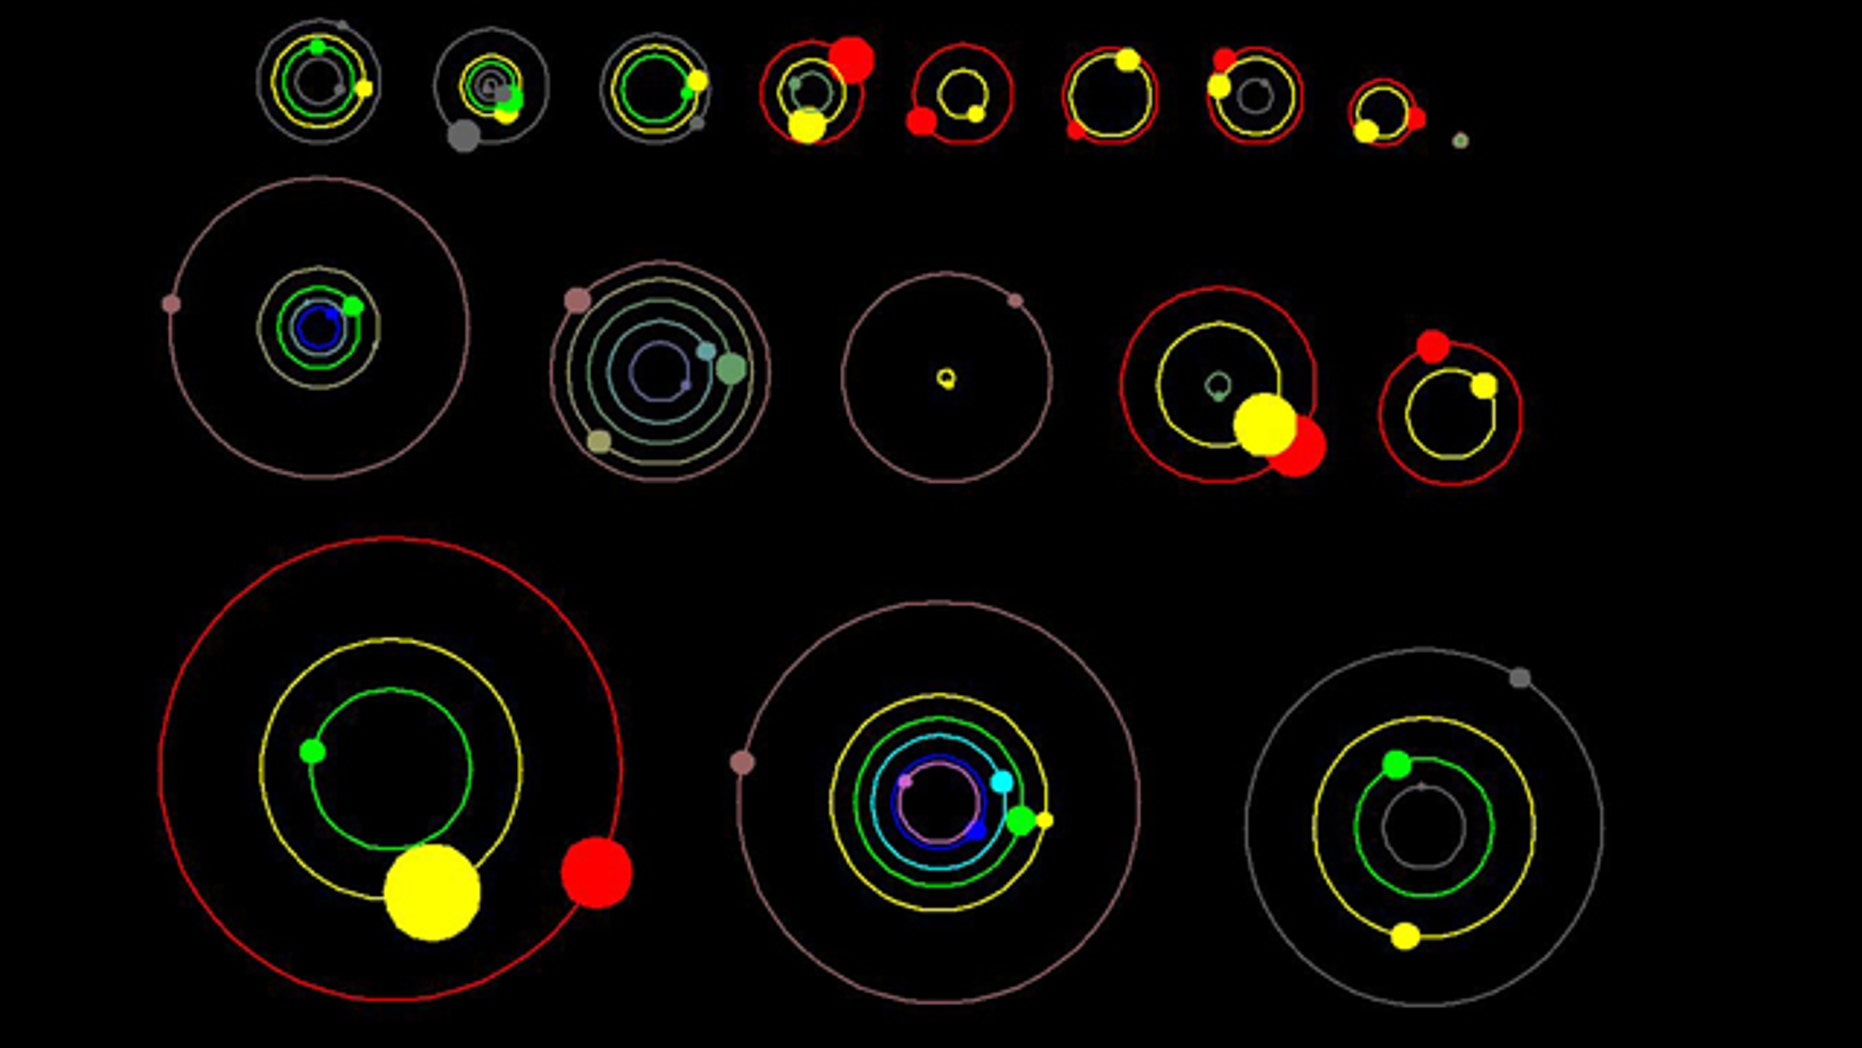 This artist's concept shows an overhead view of the orbital position of the planets in systems with multiple transiting planets discovered by NASA's Kepler mission, and announced on Jan. 26, 2012. All the colored planets have been verified. The planet candidates shown in grey have not yet been verified.